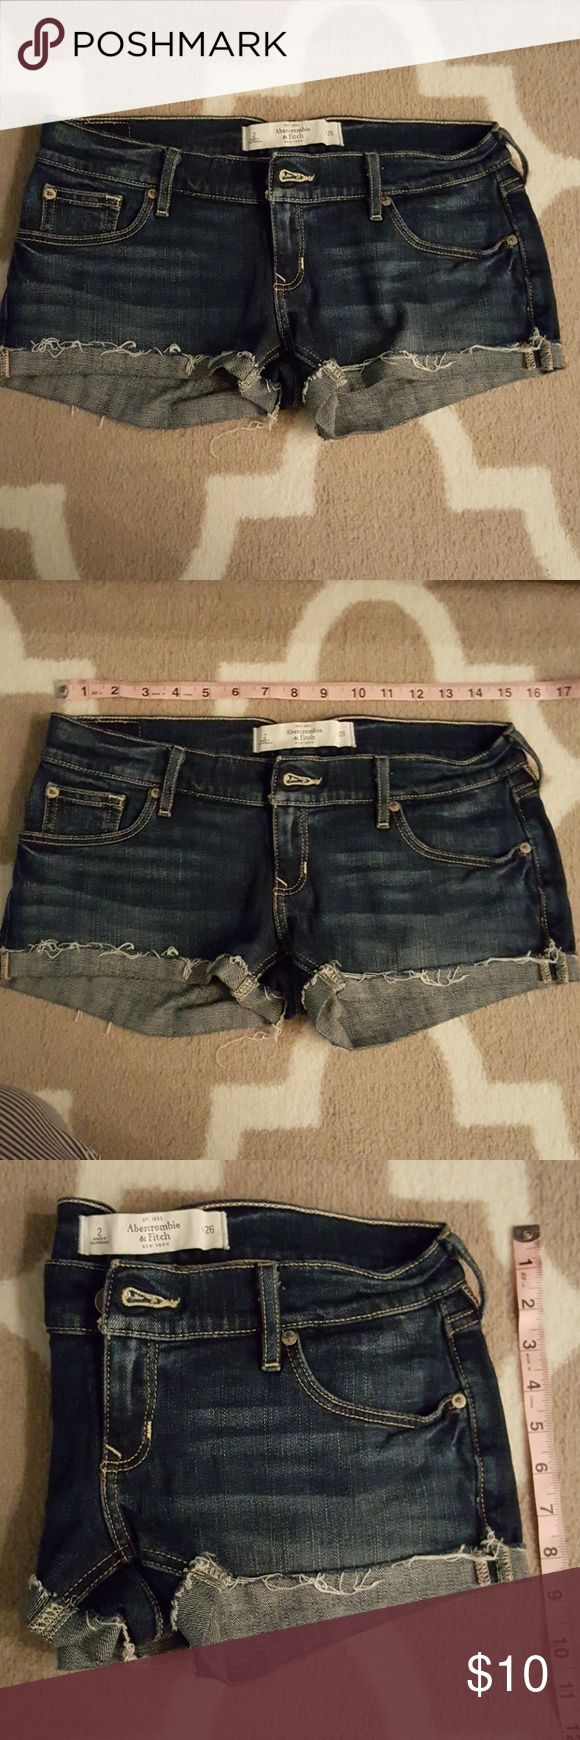 Abercrombie and Fitch Shorts 98%  Cotton and 2% Elastane, waist 26 or 2. Abercrombie & Fitch Shorts Jean Shorts